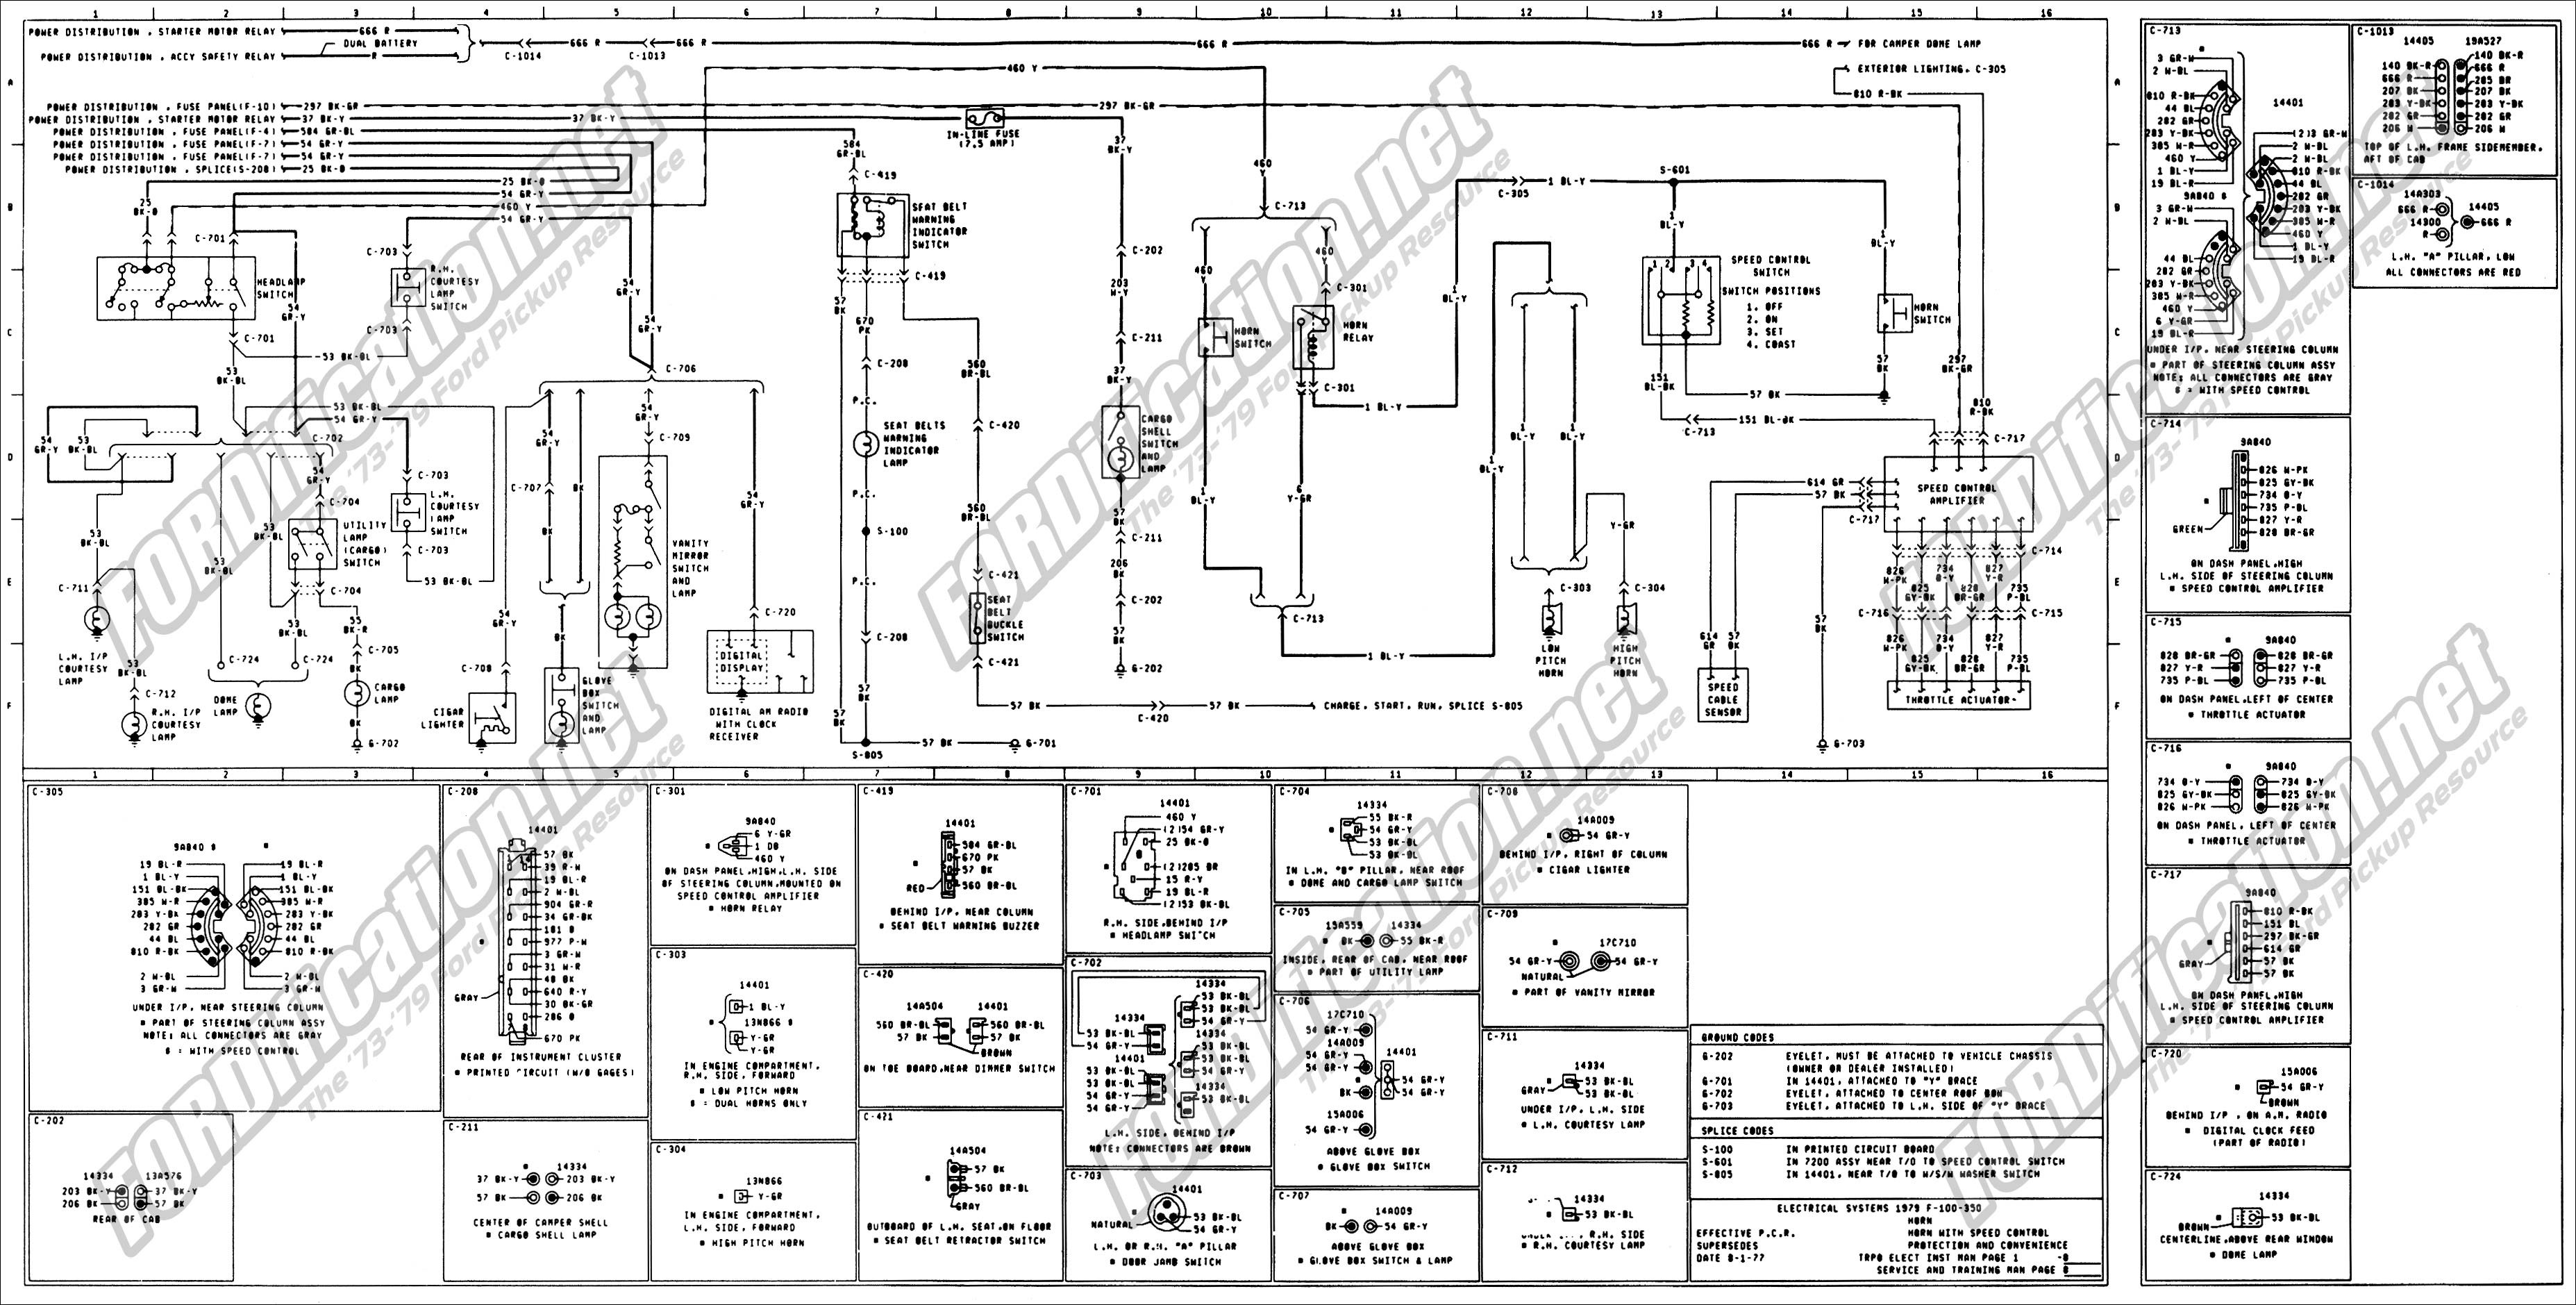 Ford Truck Wiring Diagram Ford Truck Wiring